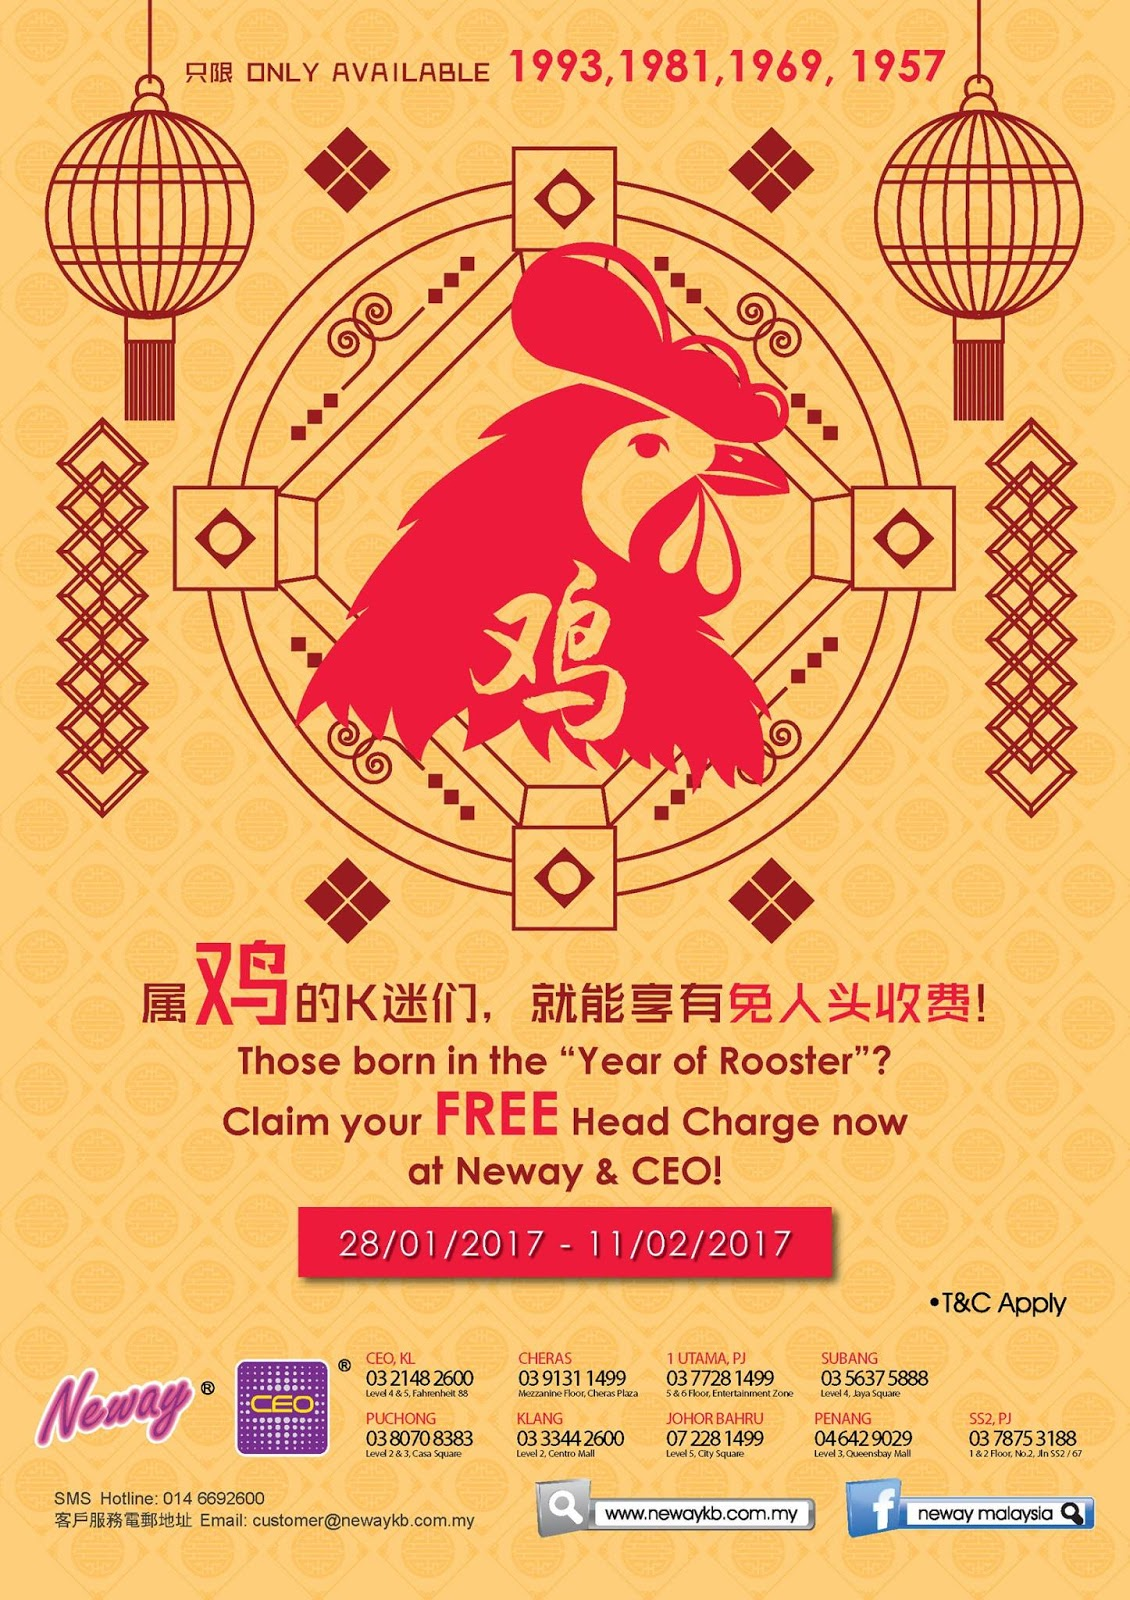 neway ceo karaoke box malaysia free head charge chinese new year promotion - Chinese New Year 1993